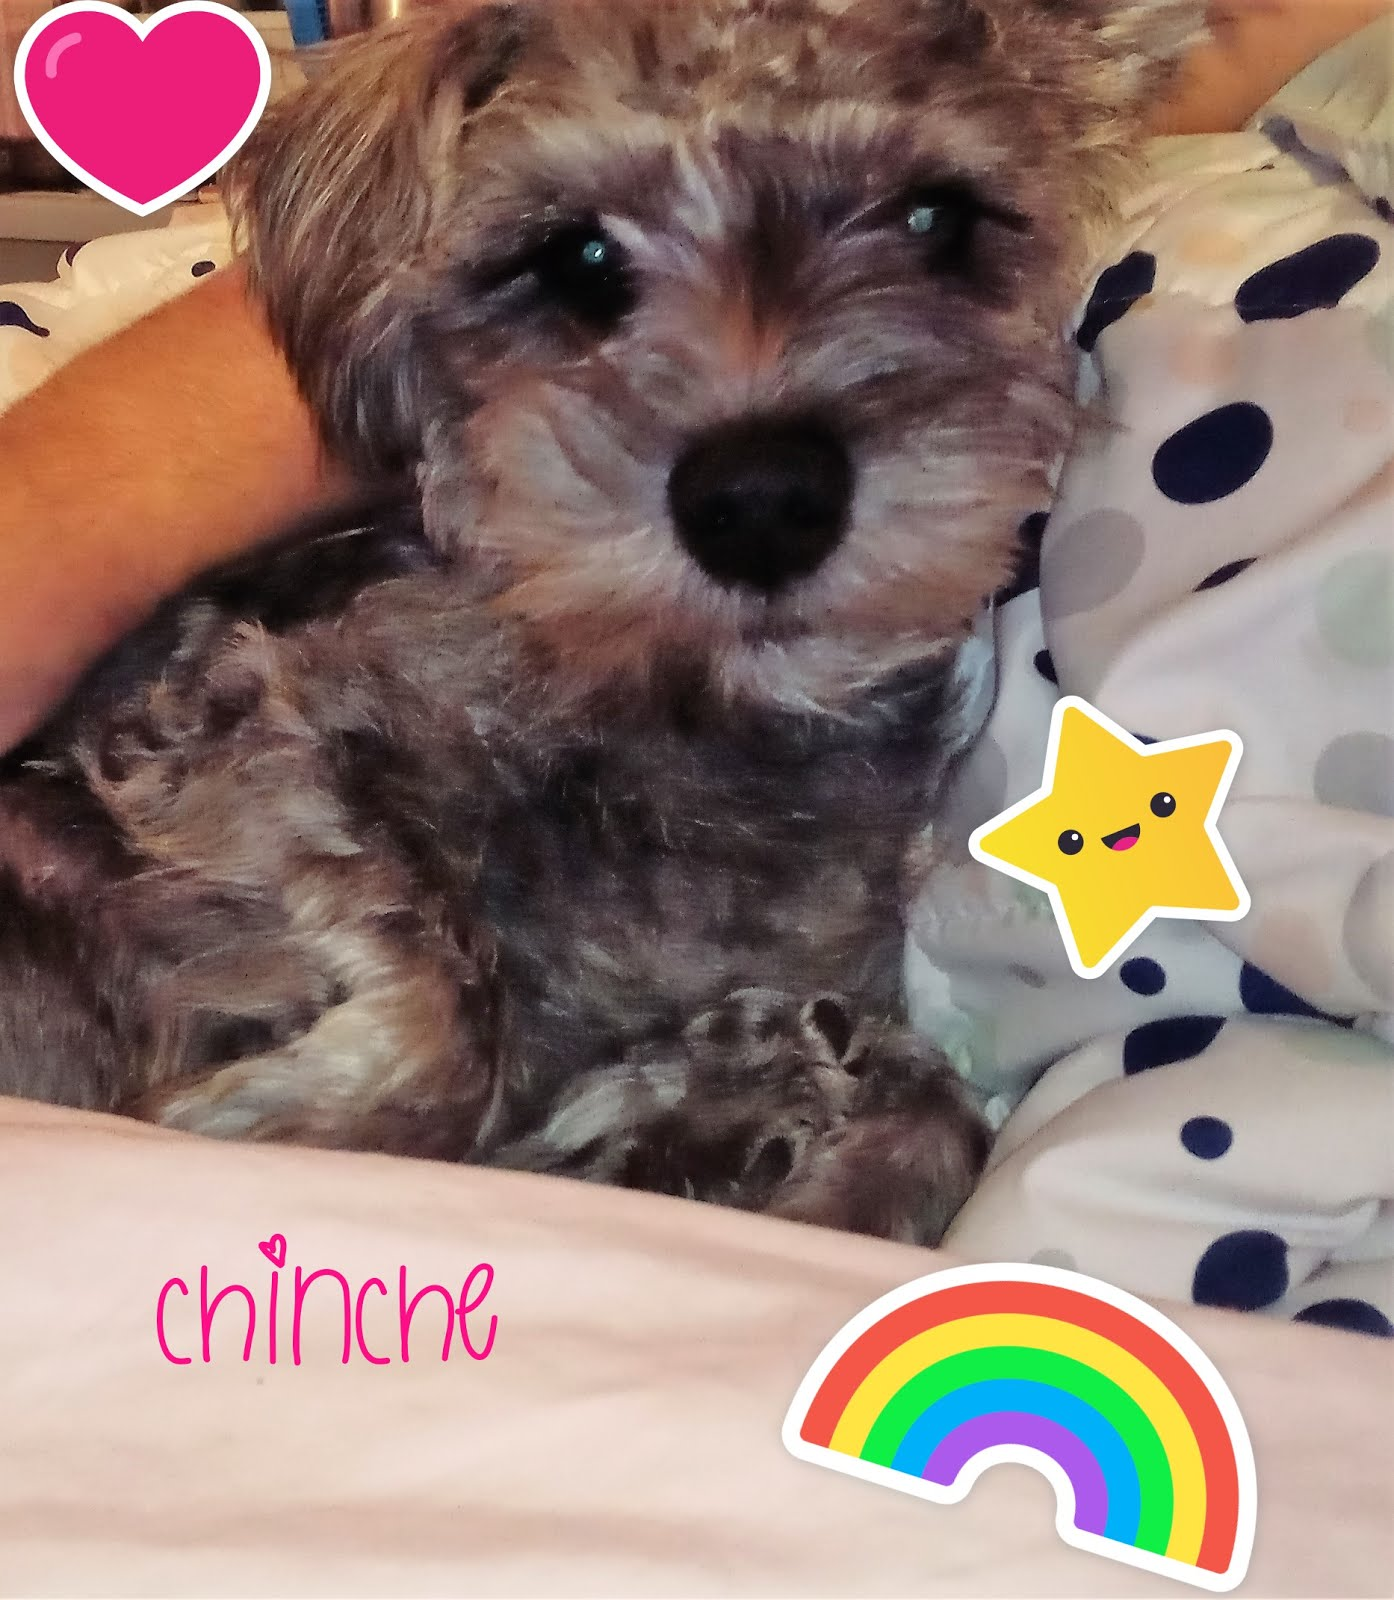 My Baby Dog Chinche